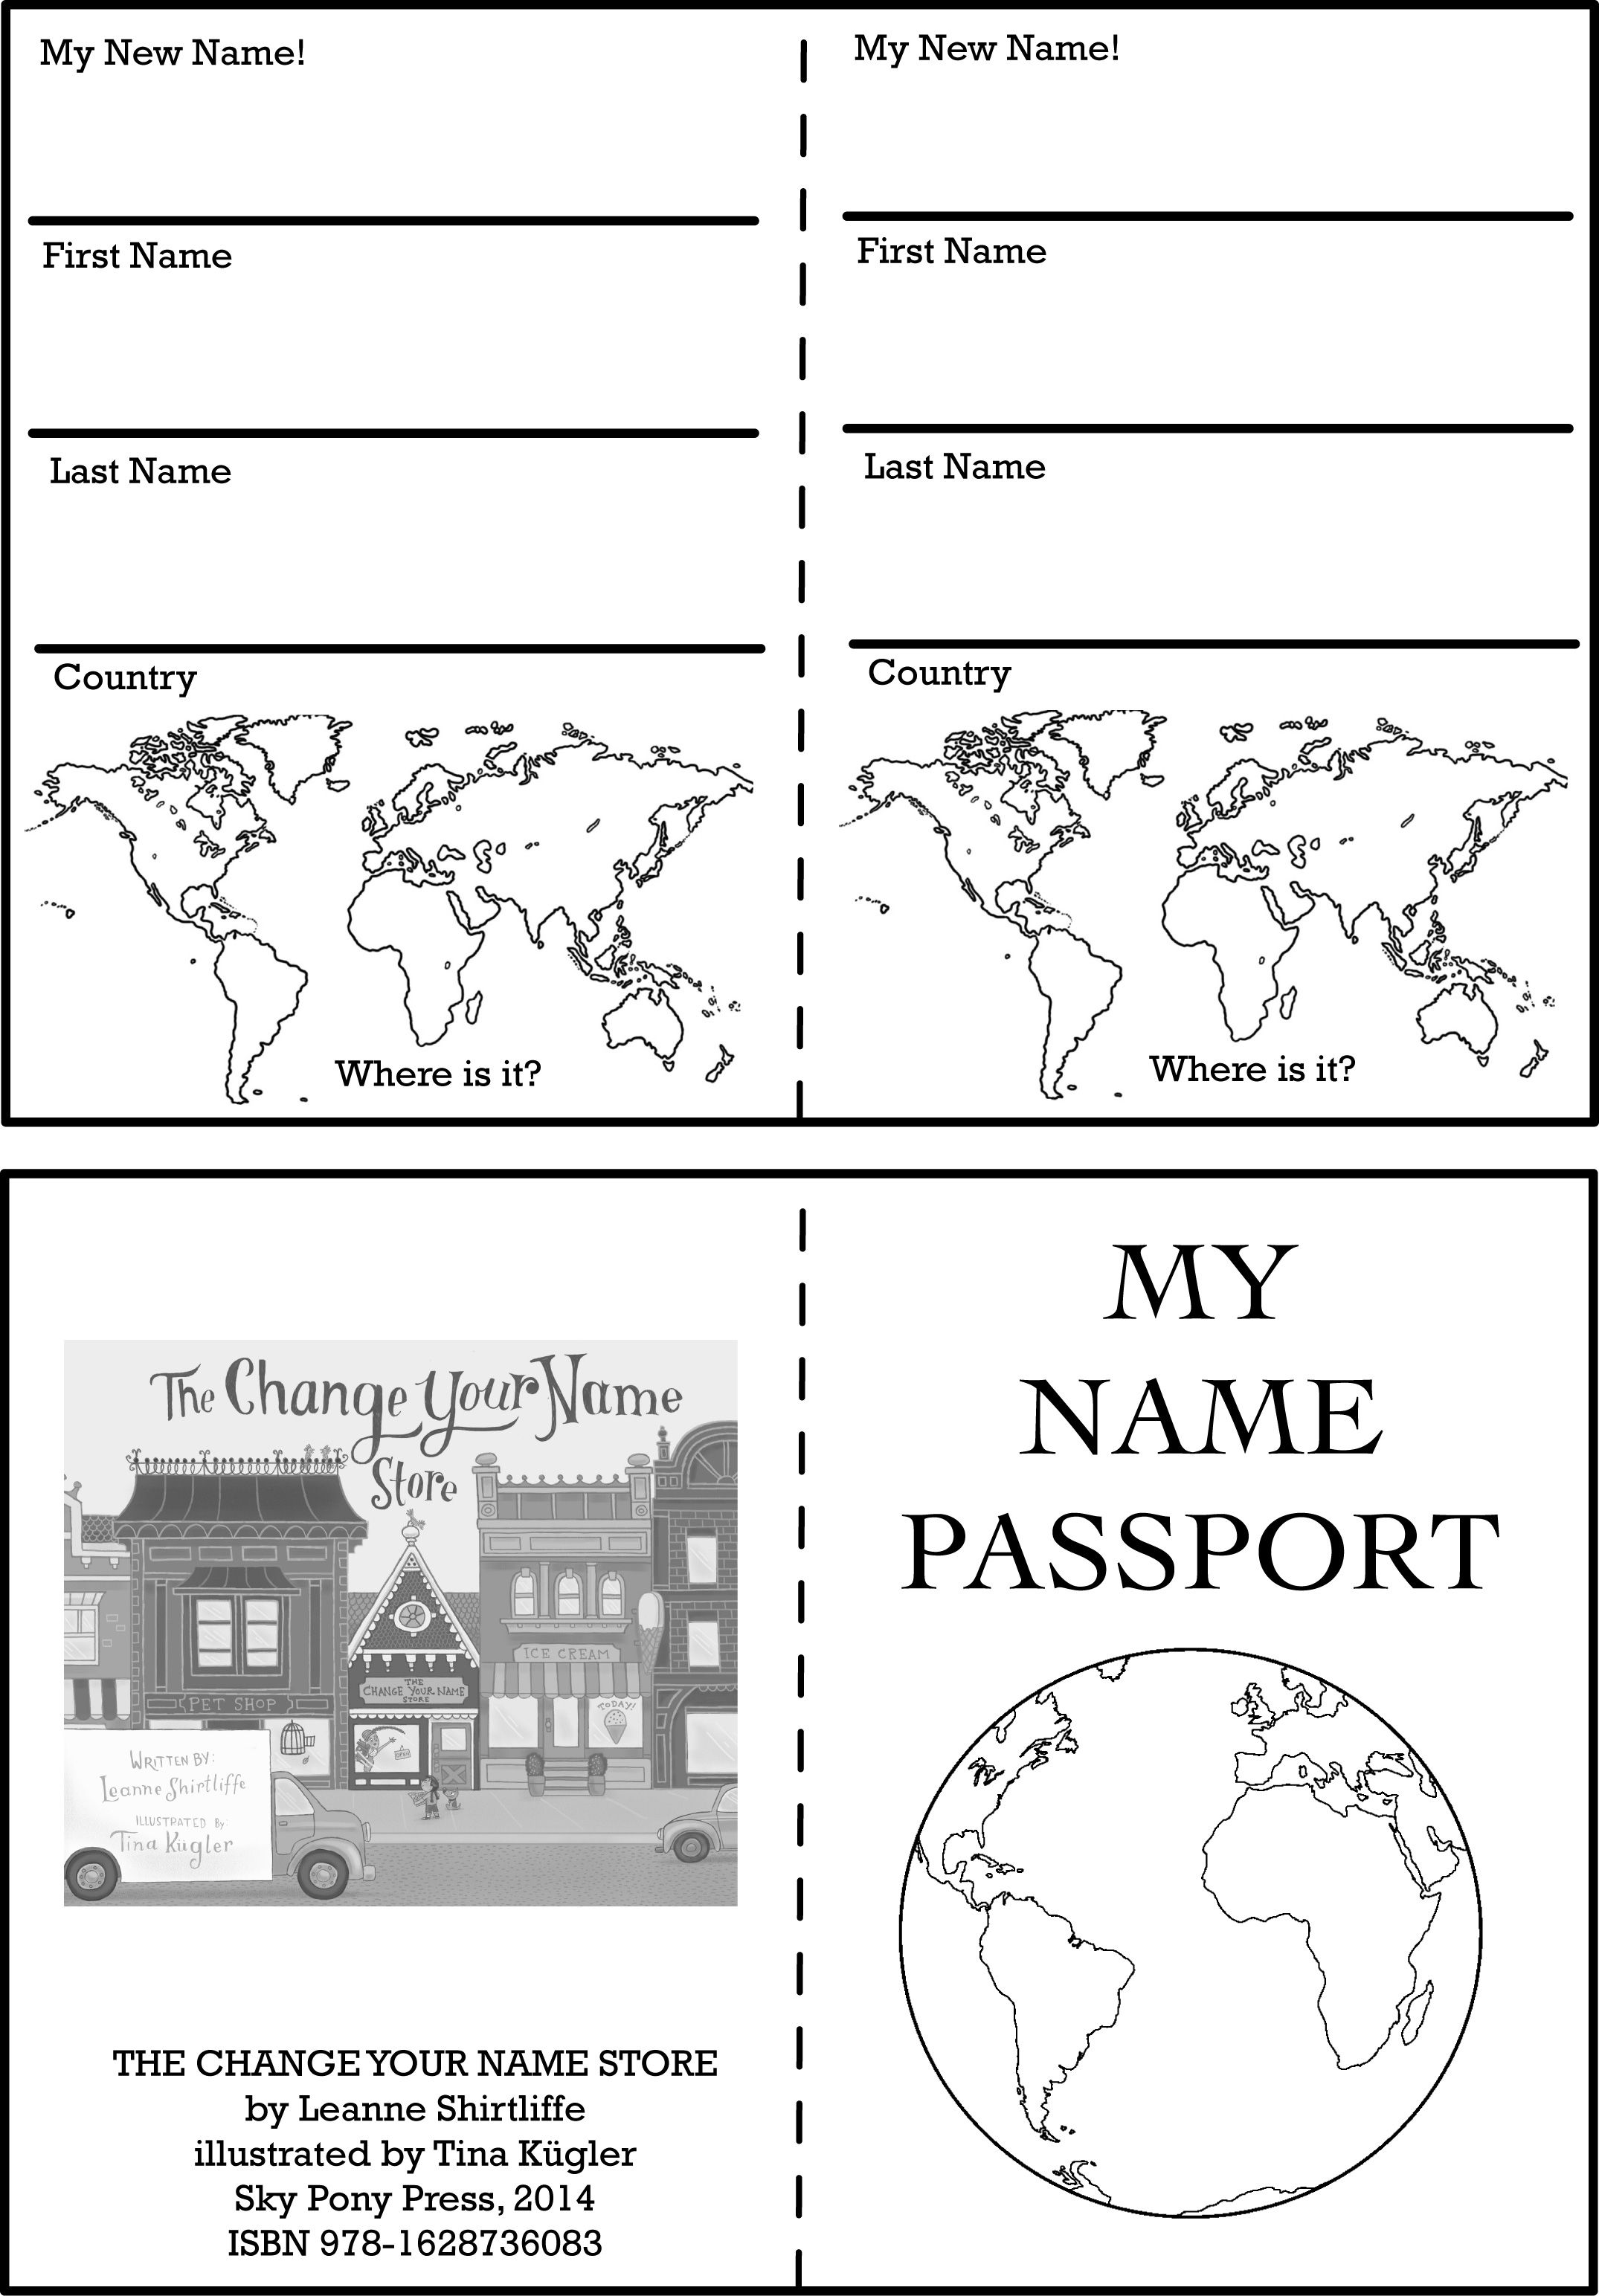 Activity Worksheets And Printables Passports For Kids Passport Template Passport